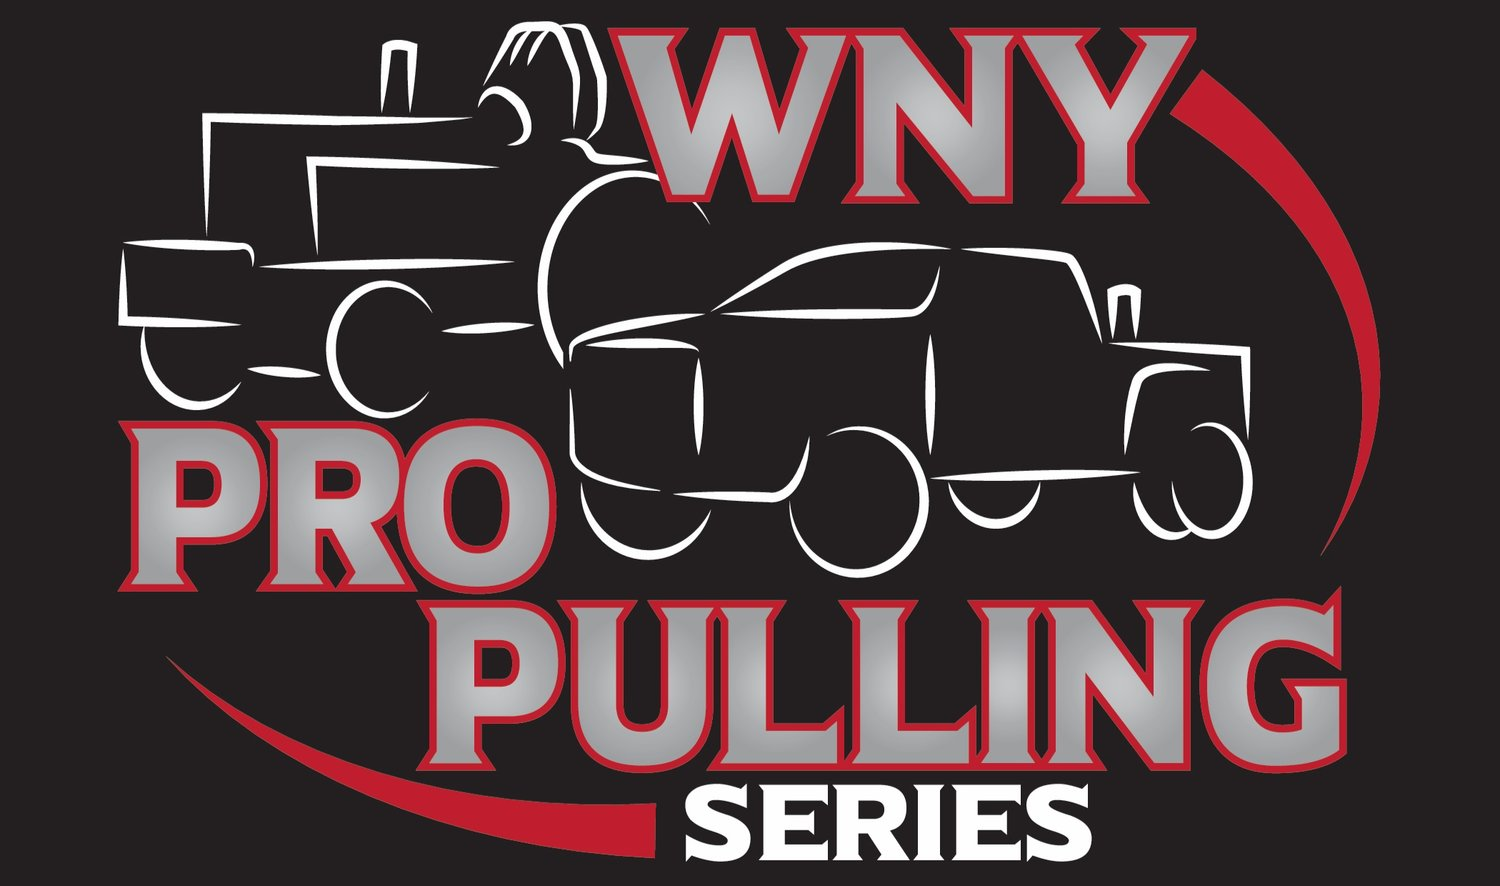 Pulling Schedule — WNY Pro Pulling Series